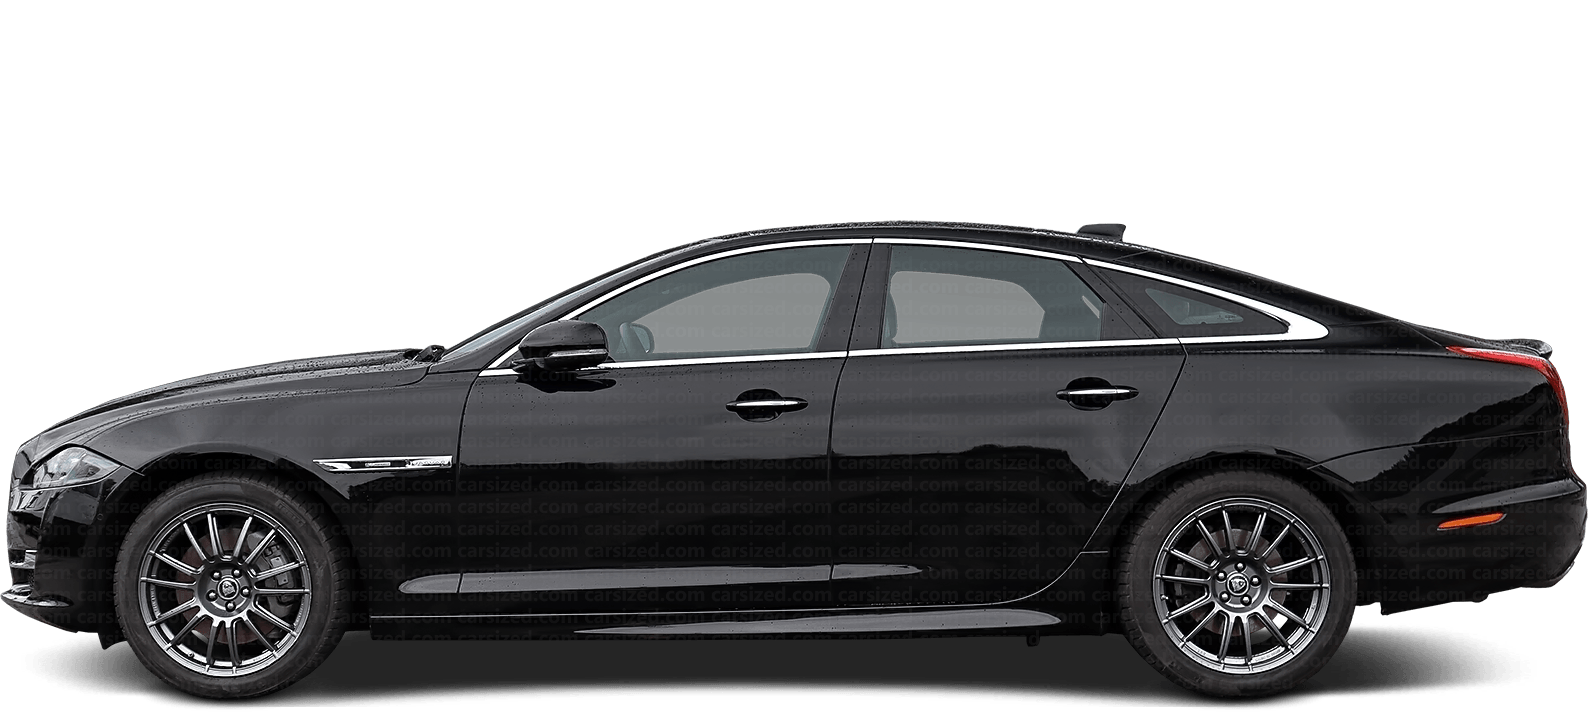 Jaguar XJ Sedan 2010-2019 Side View